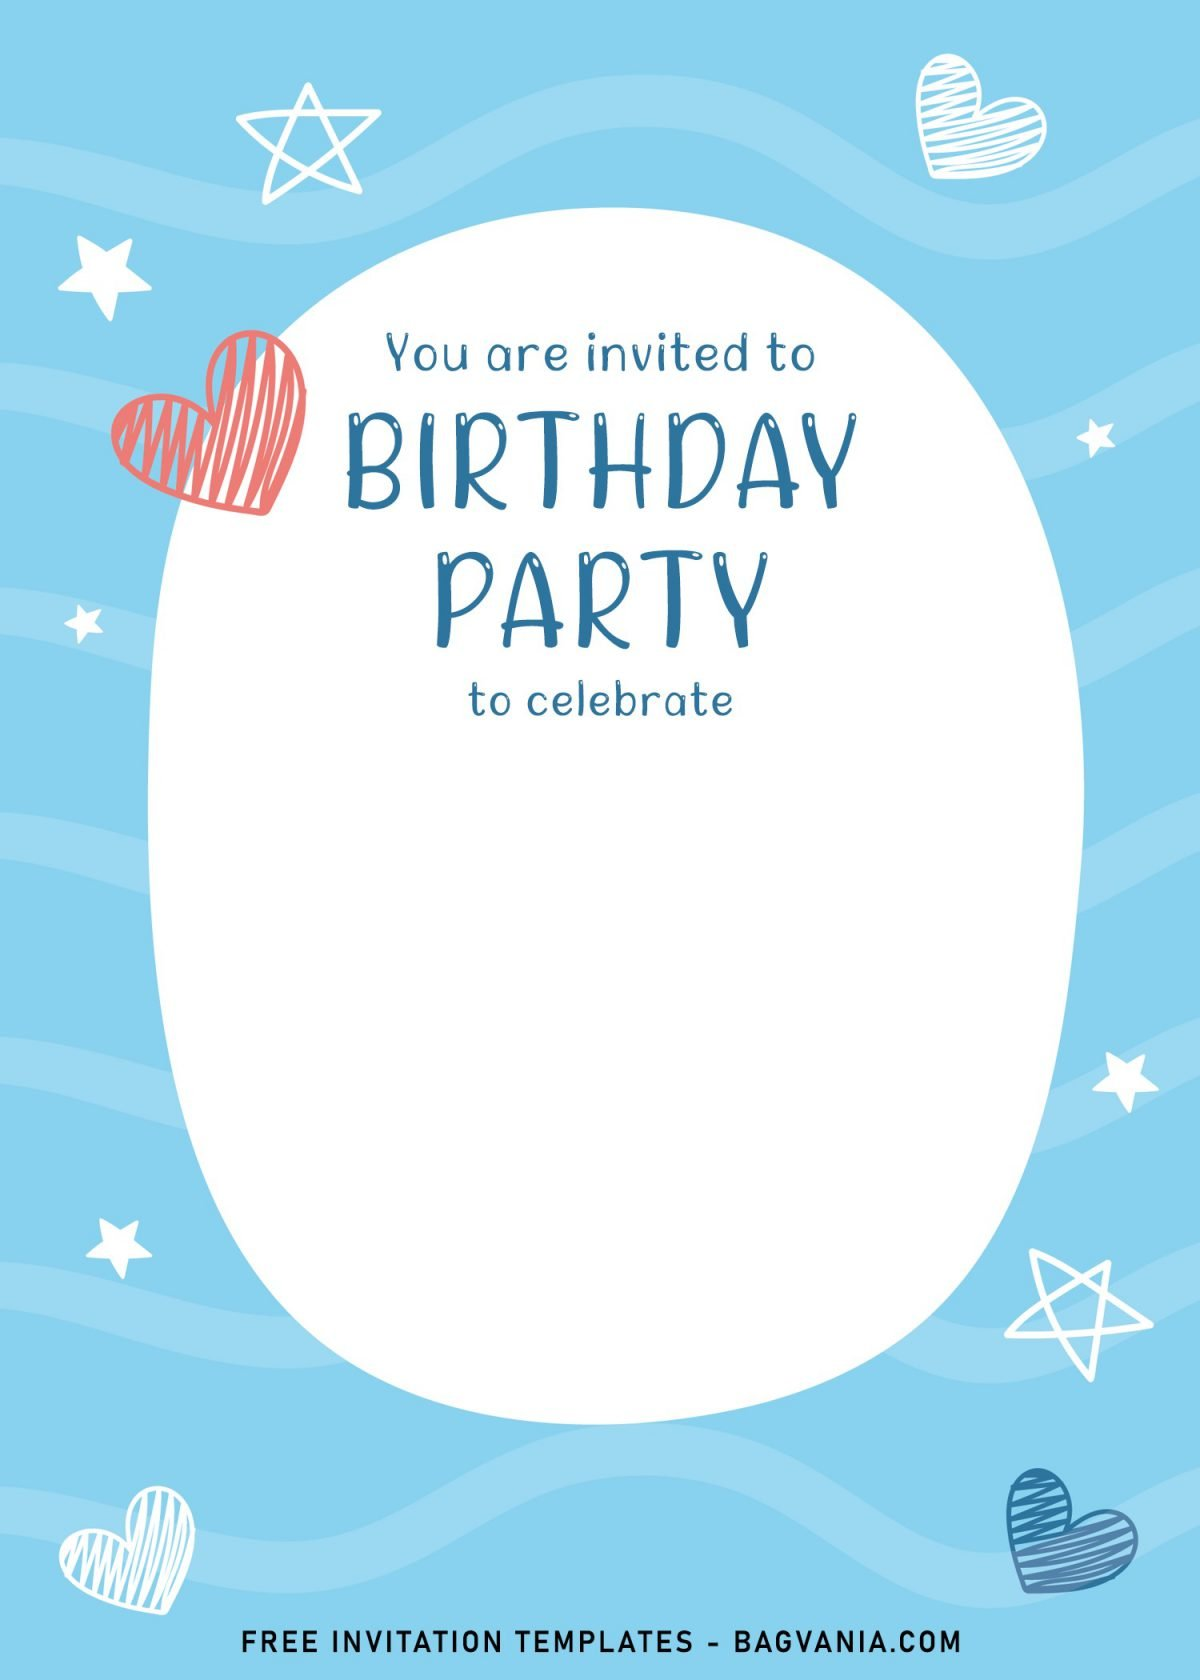 7+ Cute And Fun Birthday Invitation Templates For Kids Birthday Party and has